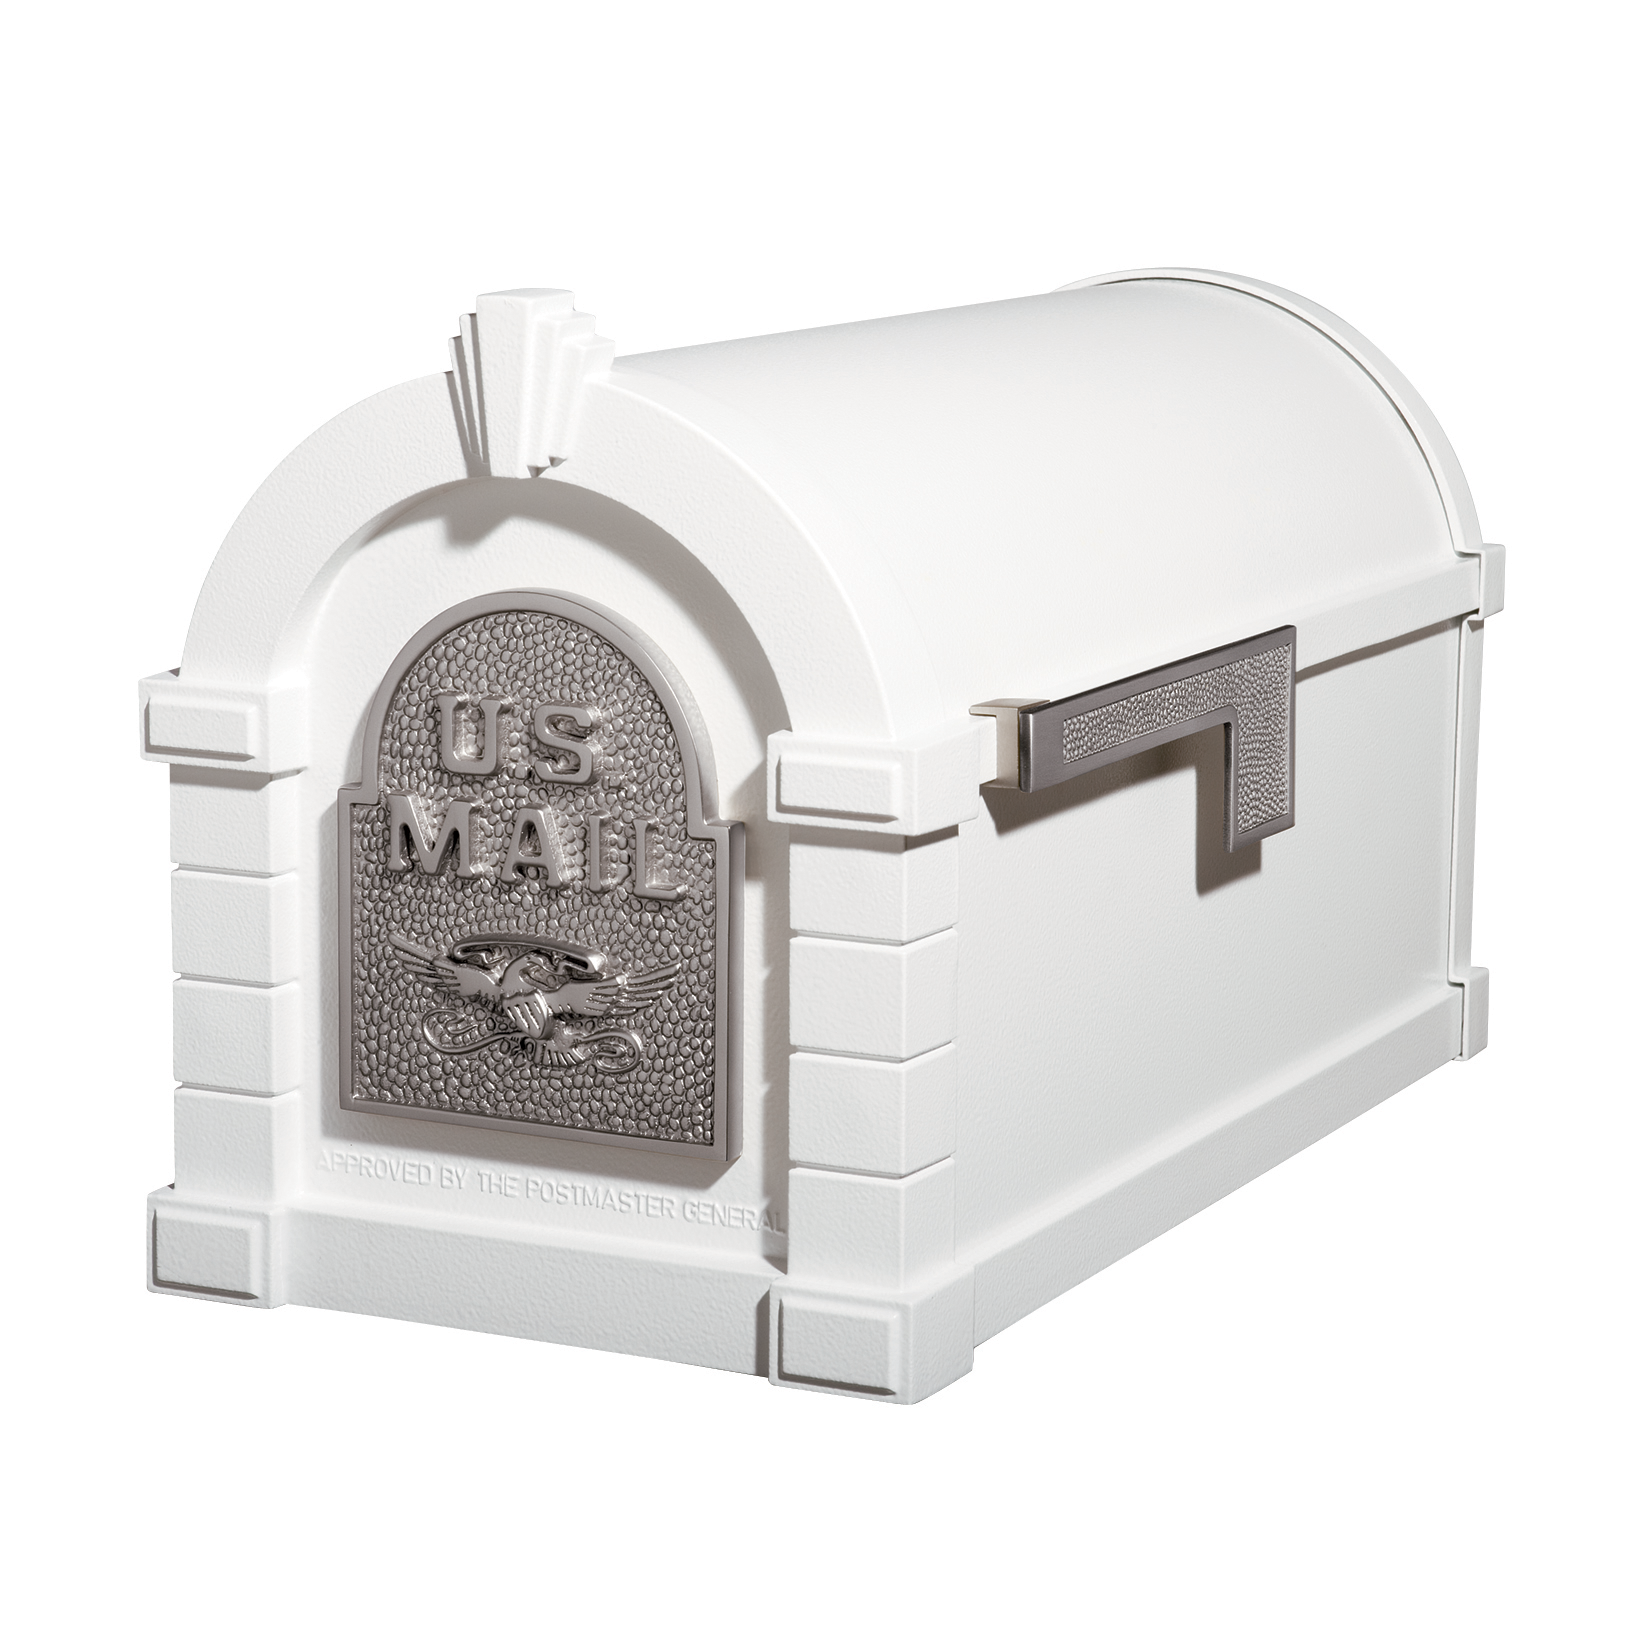 Gaines Eagle Keystone Mailboxes - White with Satin Nickel